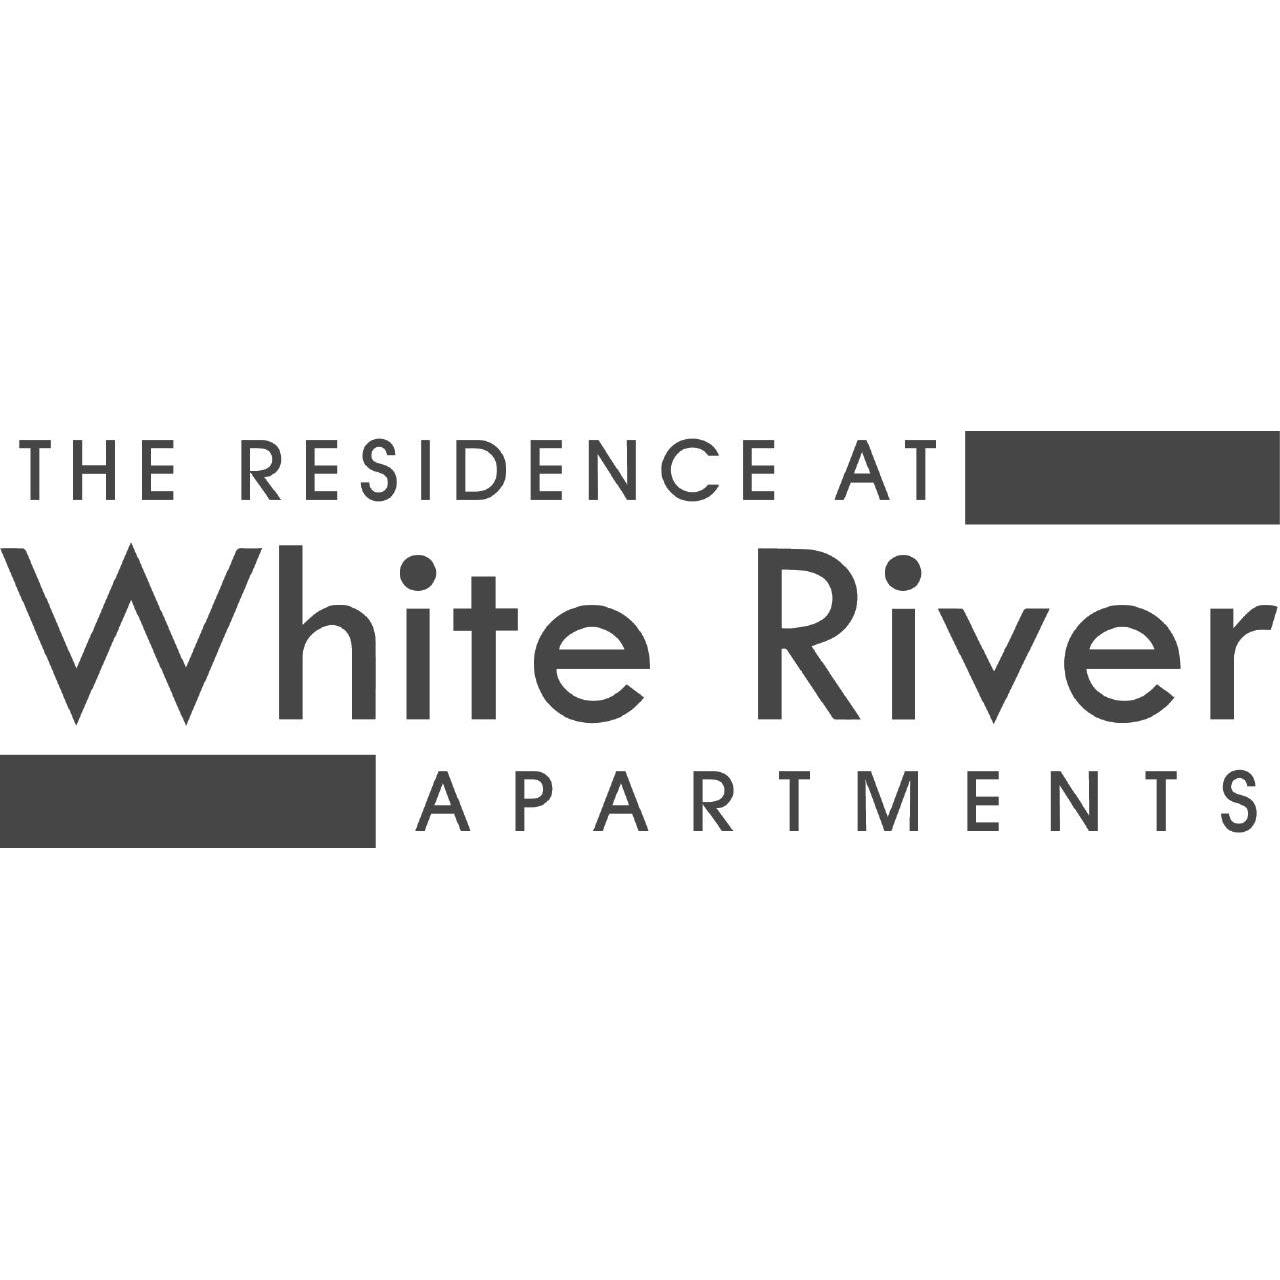 The Residence at White River Apartments